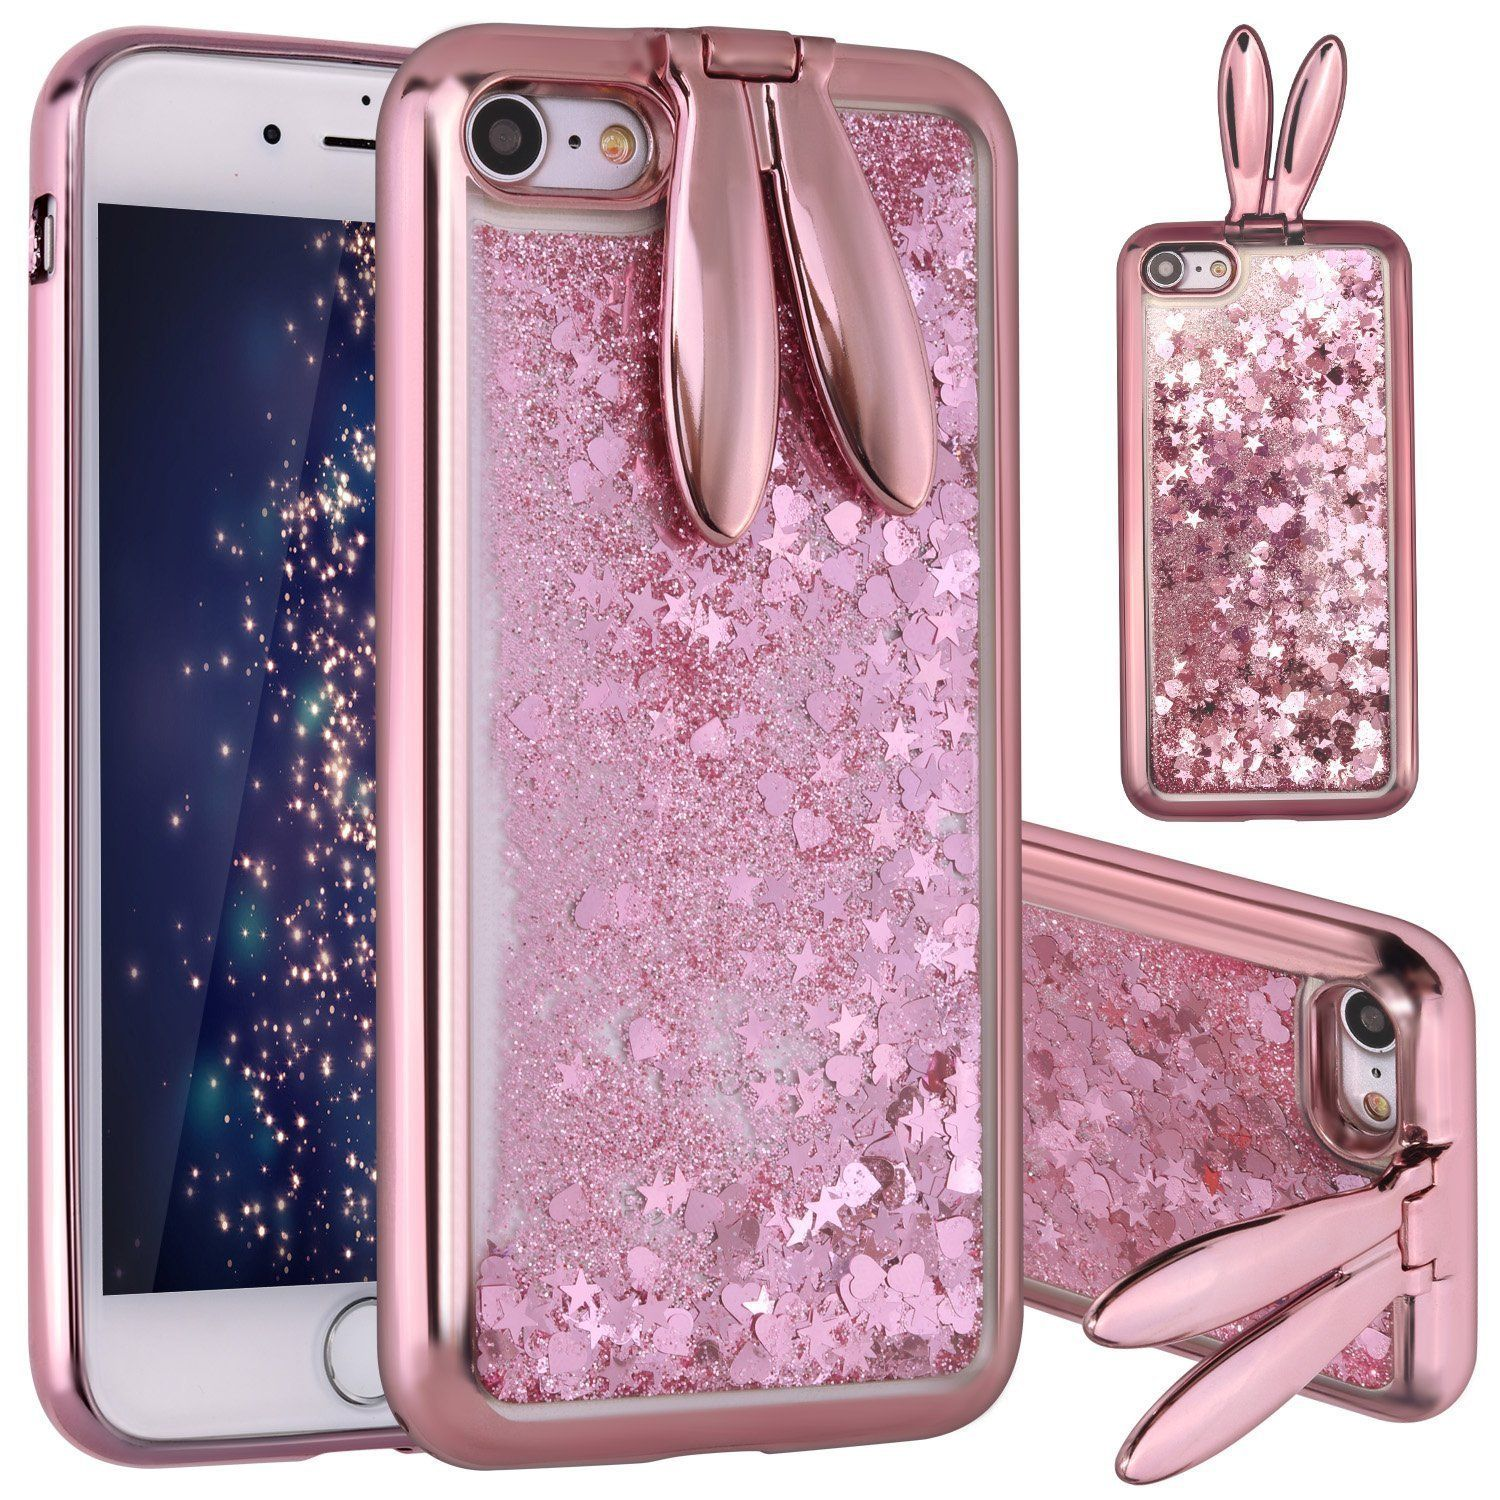 "For iPhone 7 4 7"" For iPhone 8 4 7"" NAMA 3D easter Bunny Rabbit Ear Kickstand Liquid Glitter waterfall Floating Stars Hearts Bling Quickstand TPU Cover Case"